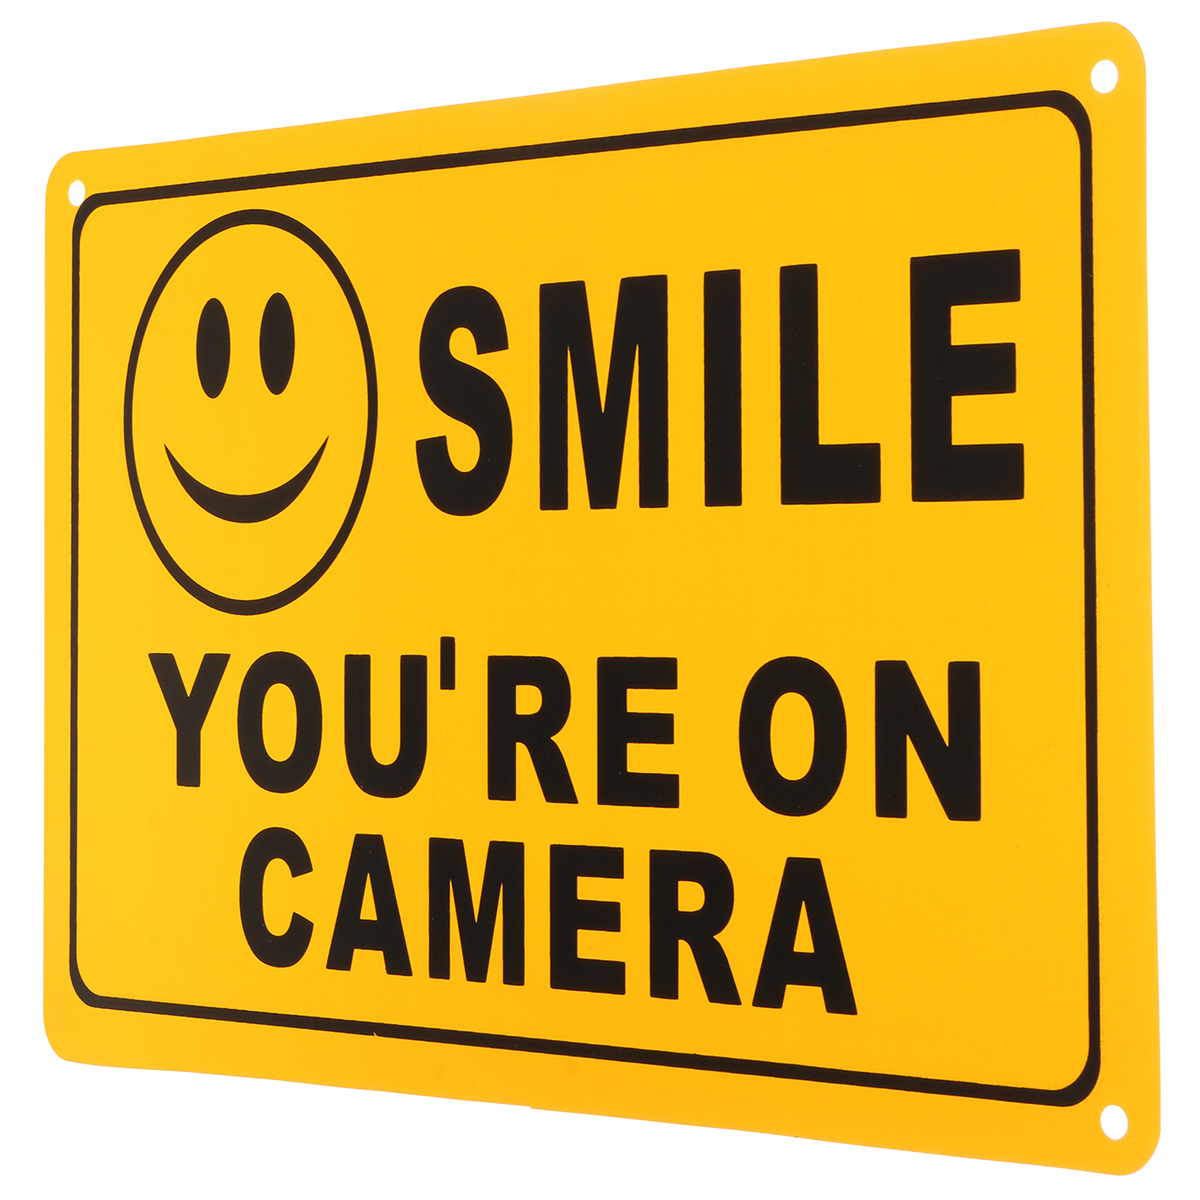 2Pcs SMILE YOU'RE ON CAMERA Warning Security Yellow Sign CCTV Video Surveillance Camera Sticker 28x18cm